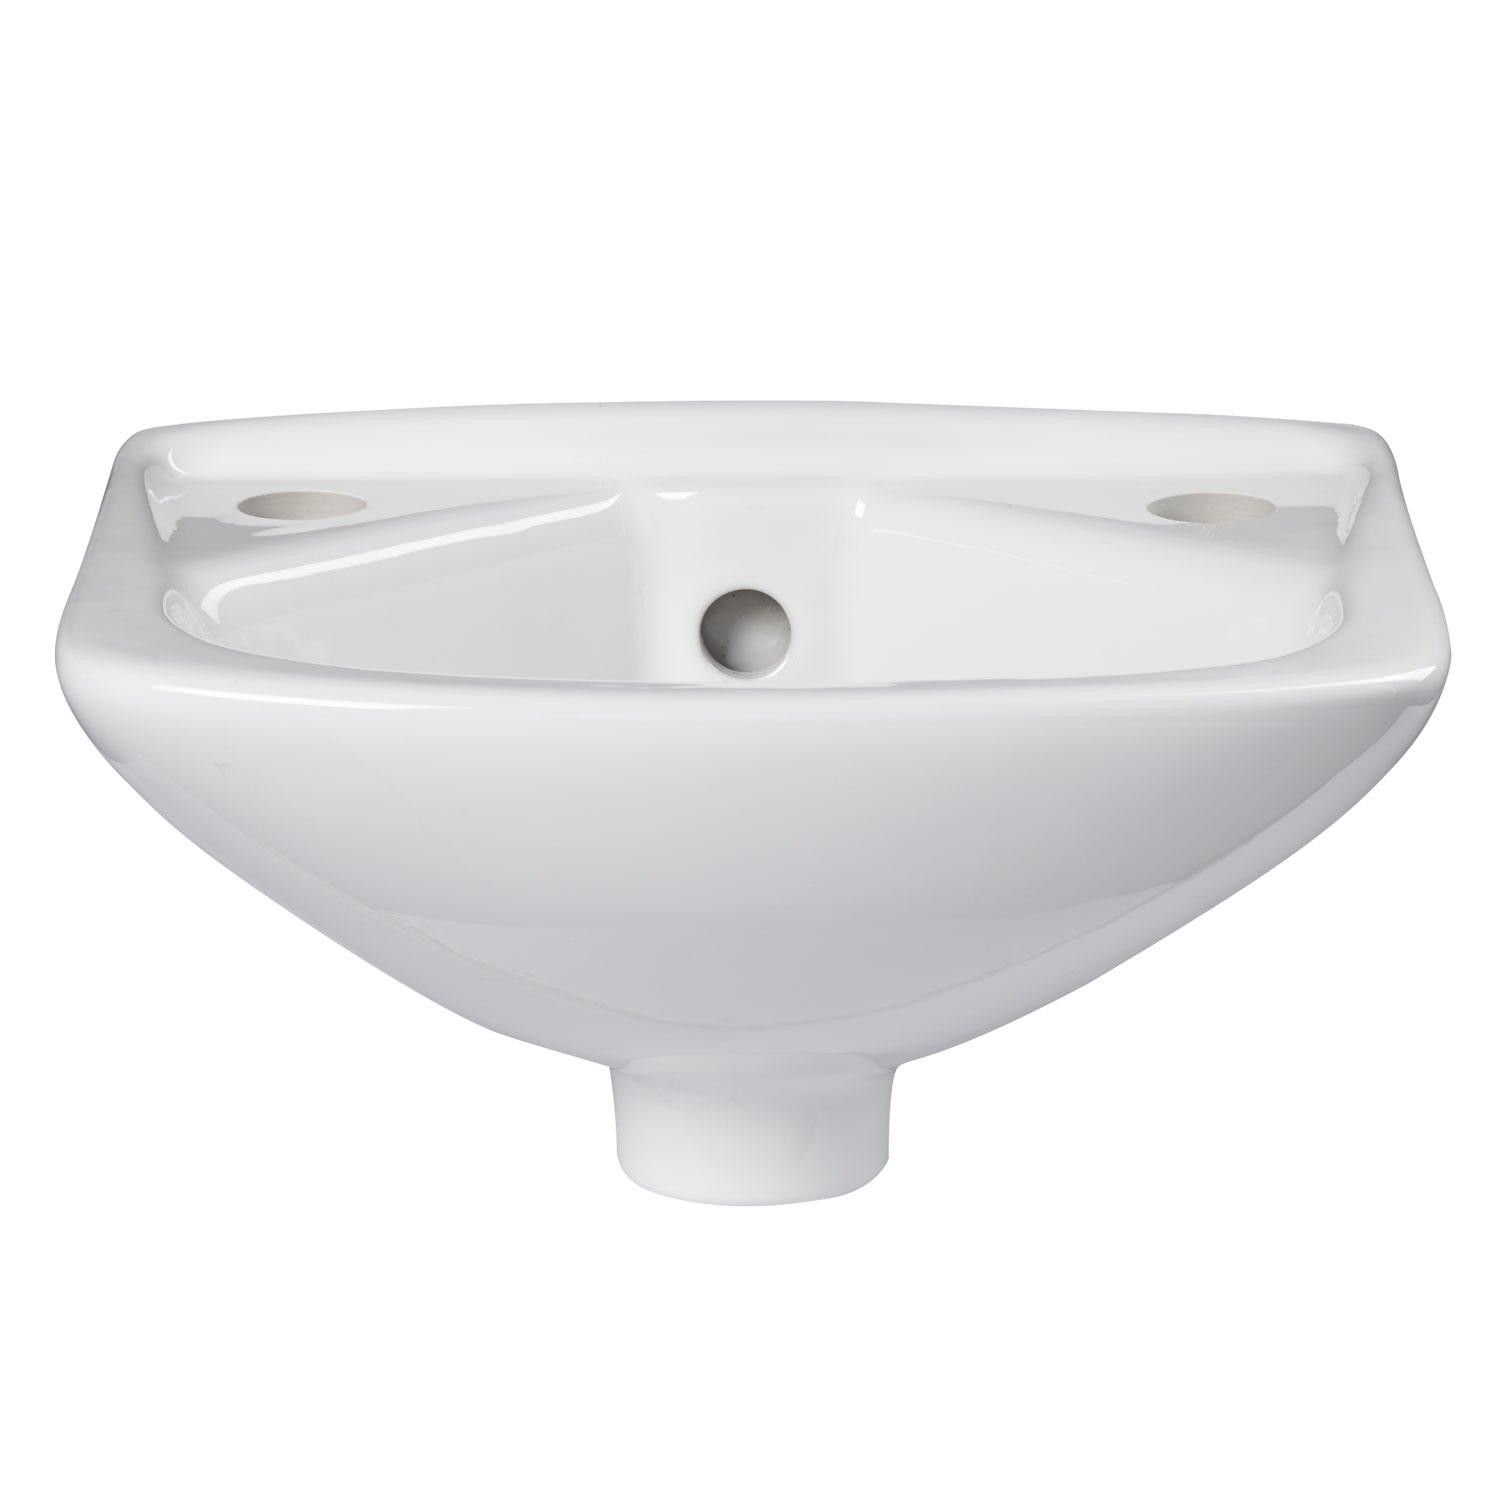 Avona Wall Mount Bathroom Sink This Is The Smallest Sink I Could Find Only 10 Inches Wide Sink Wall Mounted Sink Wall Mounted Bathroom Sinks